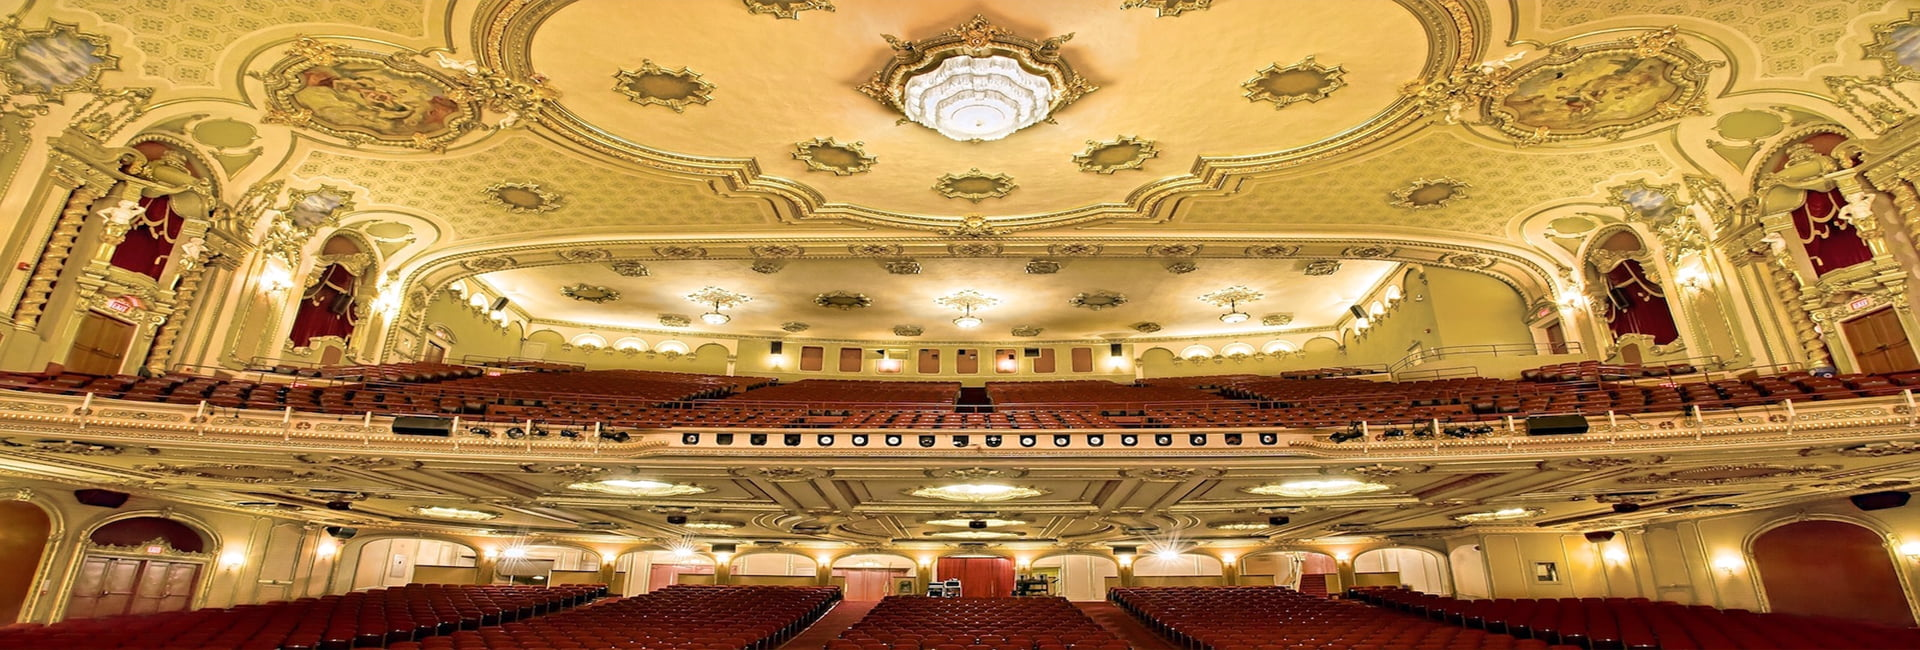 Palace Theatre, A view from the stage_Capital-Saratoga Region